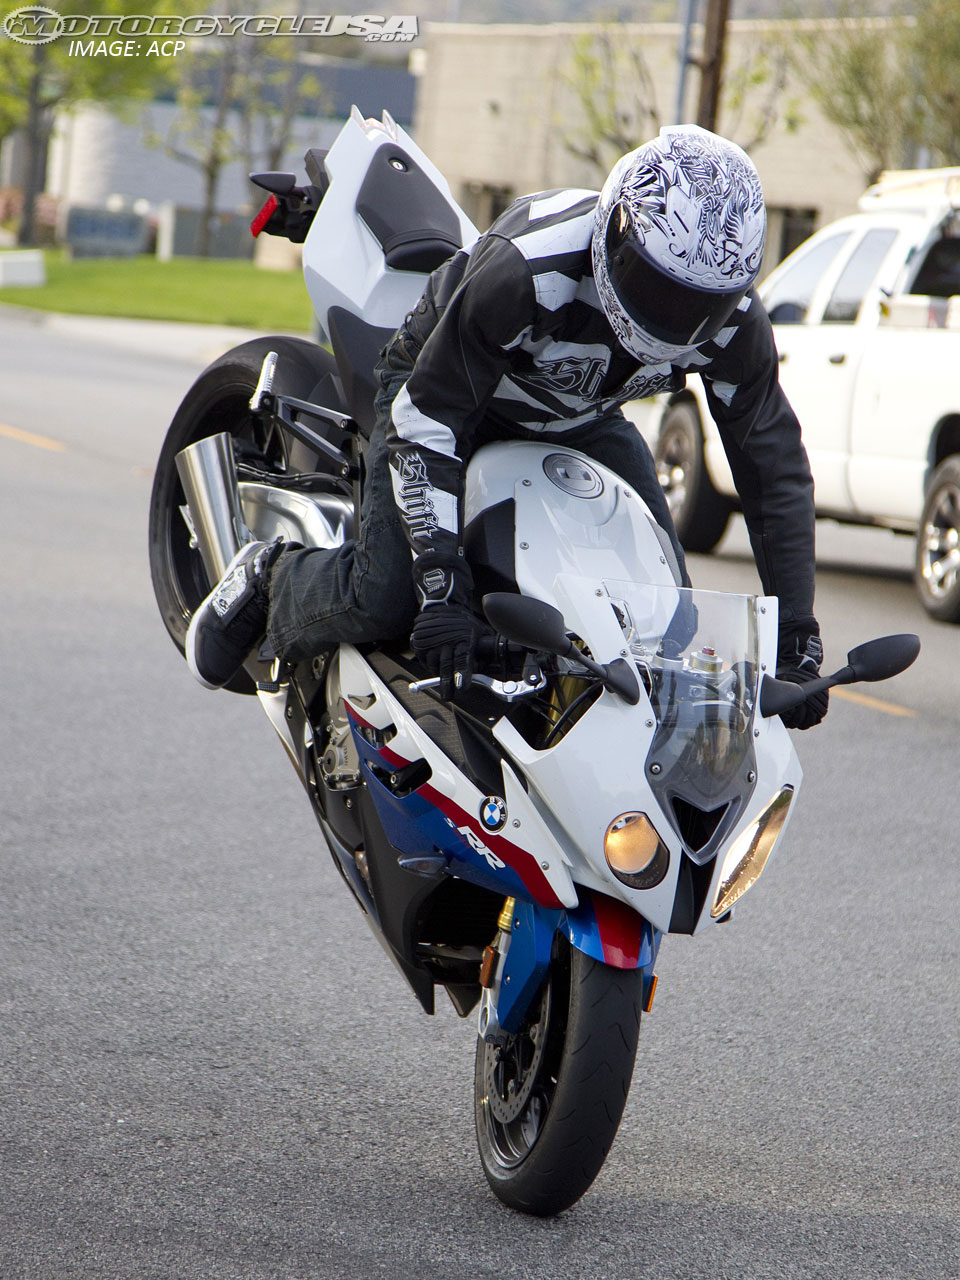 BMW S 1000 RR ABS images #8976